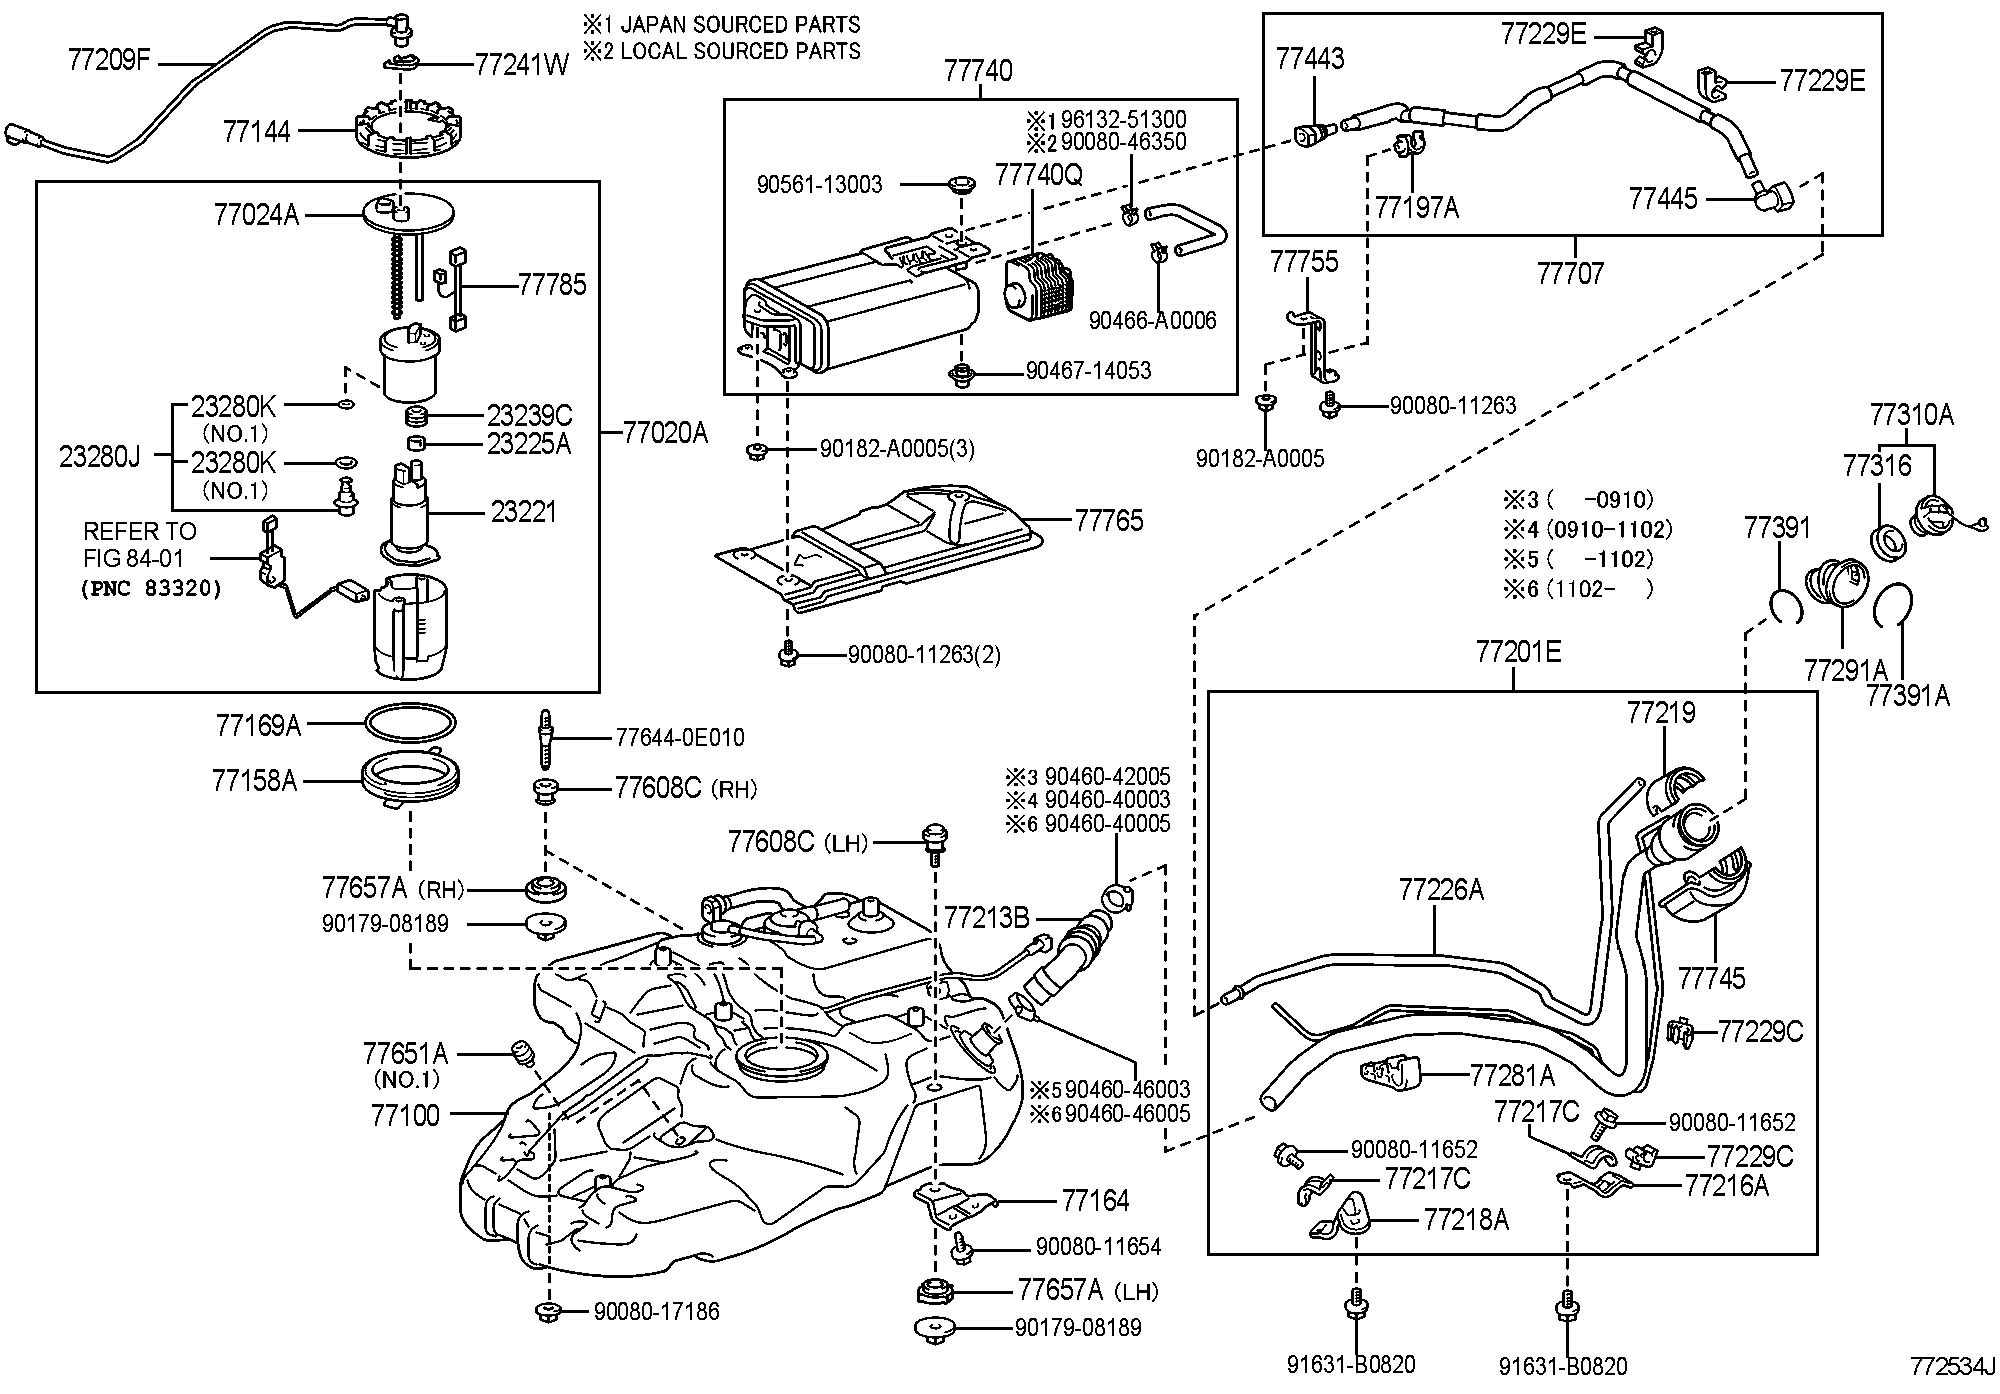 Car Neon Wiring Diagram Question About Sign Transformer Lexus Rx 350 Fuel Tank Free Engine Image For User 2004 Dodge Stereo Diagrams